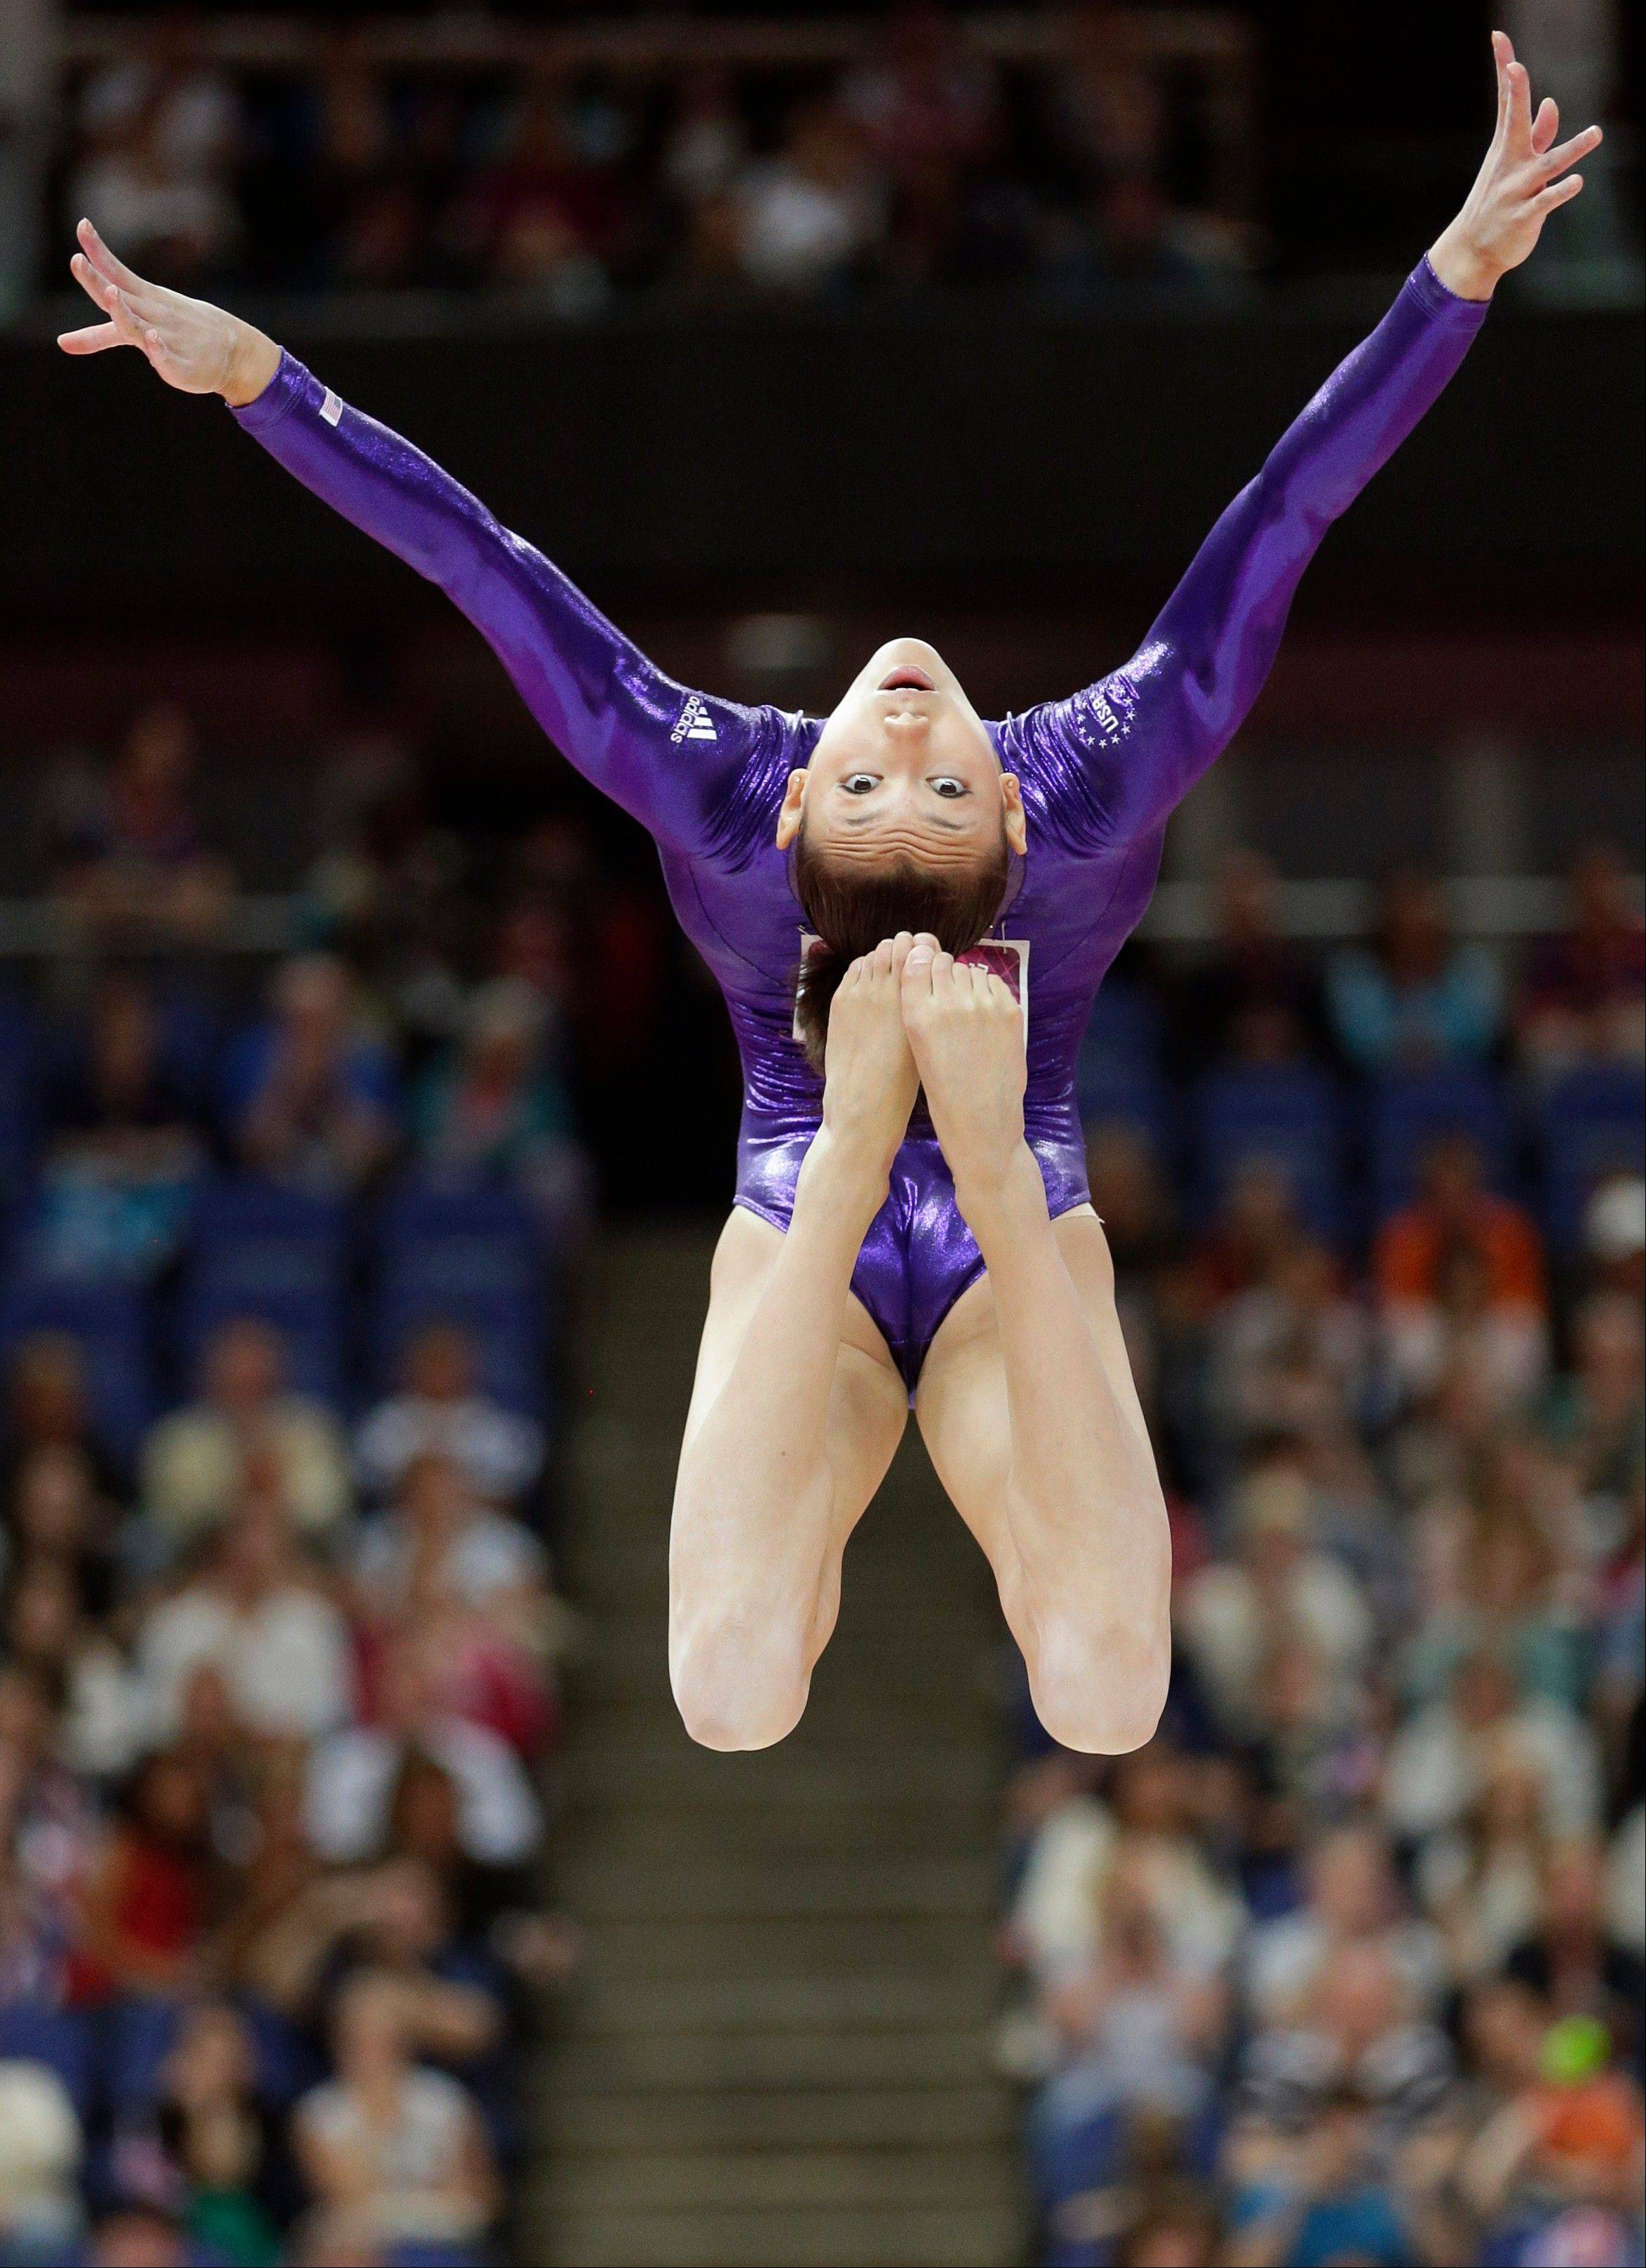 U.S. gymnast Kyla Ross competes in the 2013 Secret U.S. Classic at the Sears Centre Arena in Hoffman Estates on Saturday, July 27.